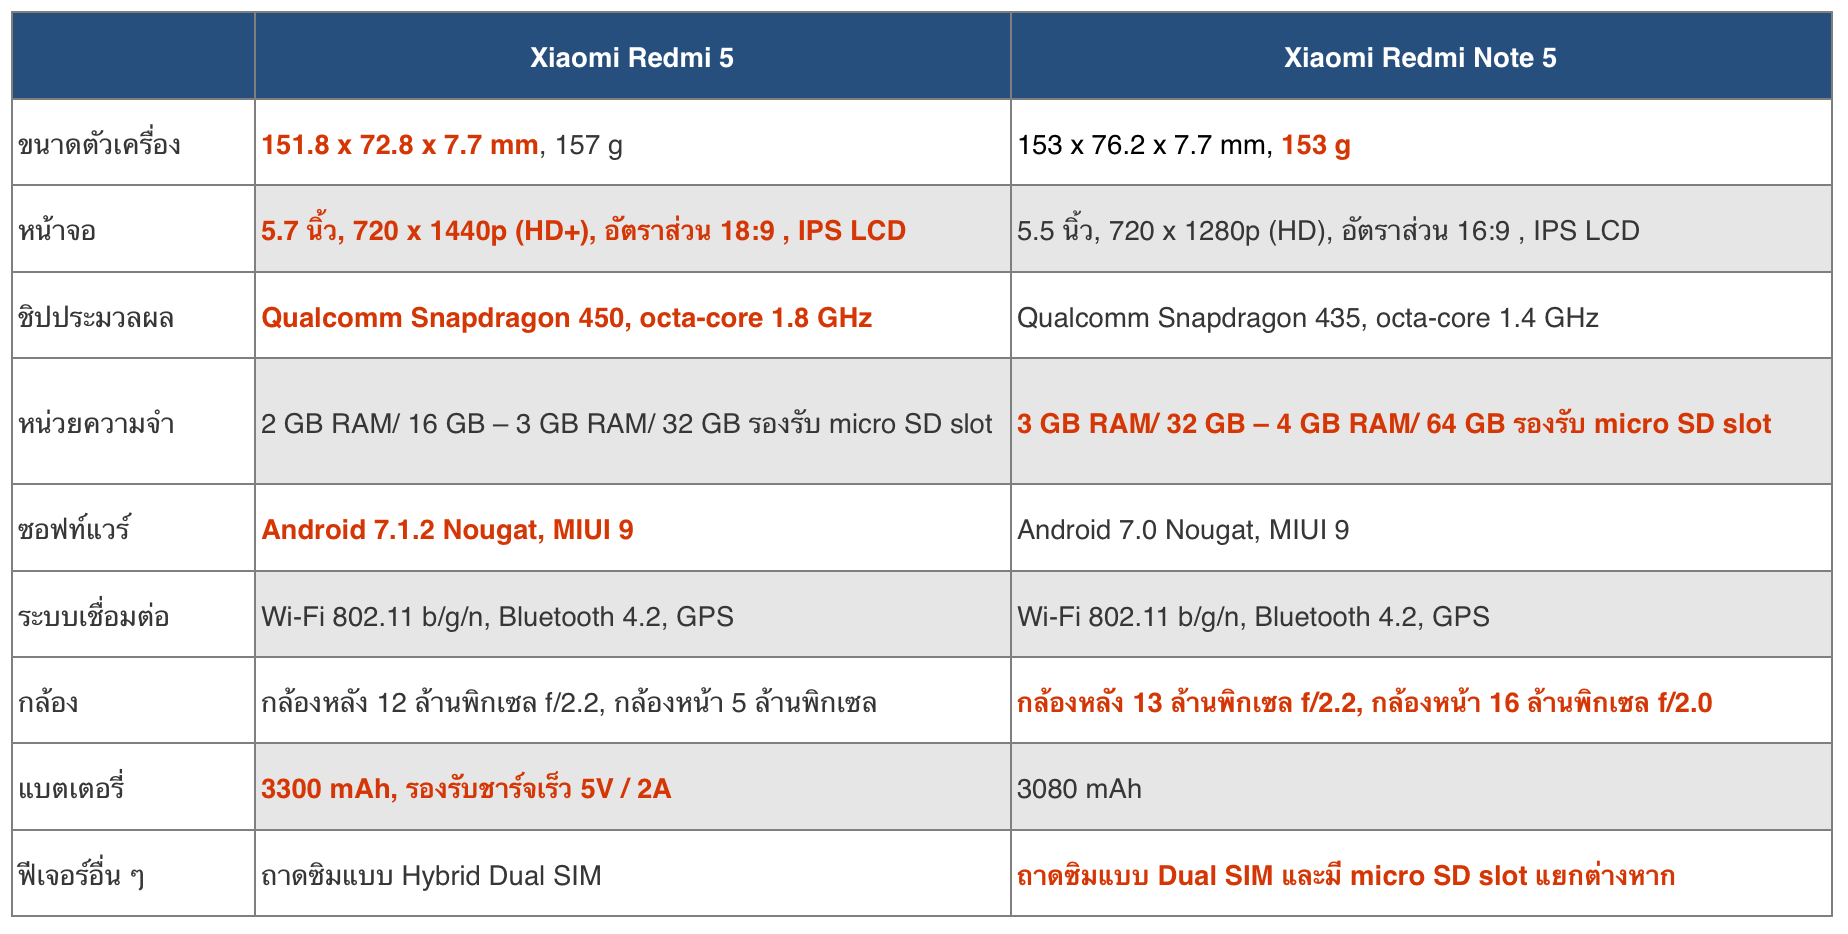 Xiaomi-Redmi-5-vs-Redmi-Note-5A-Spec-Comparison-002